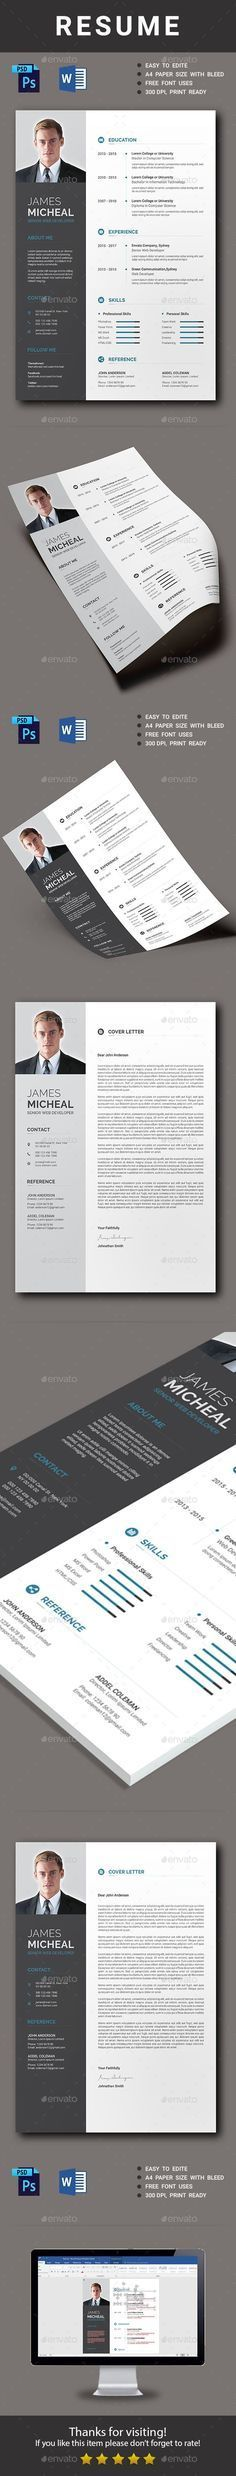 Resume For Administrative Assistant%0A Business infographic    Resume Resumes Stationery Download here   graphicriver net